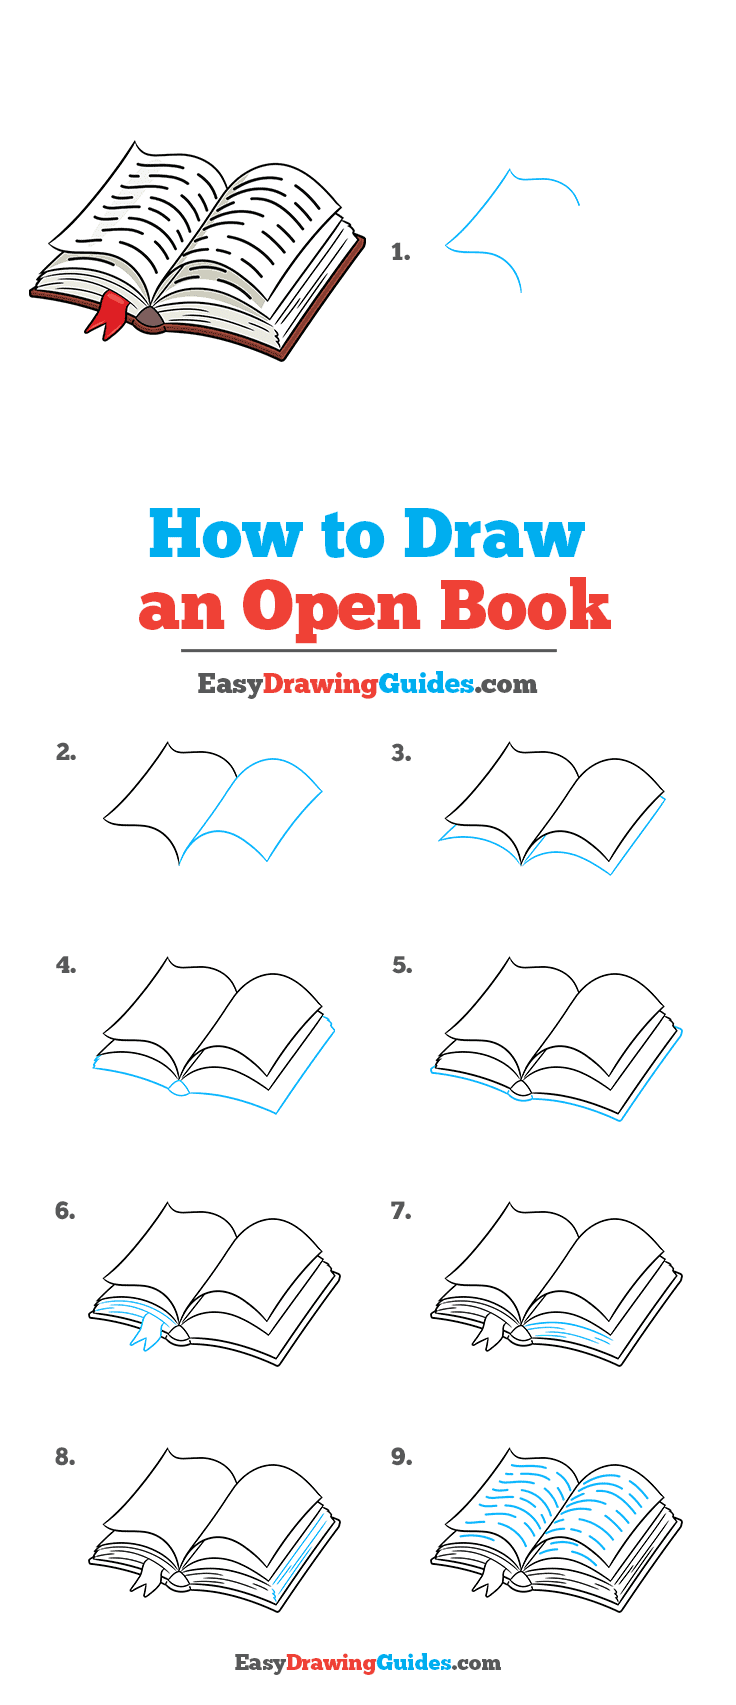 How to Draw Open Book